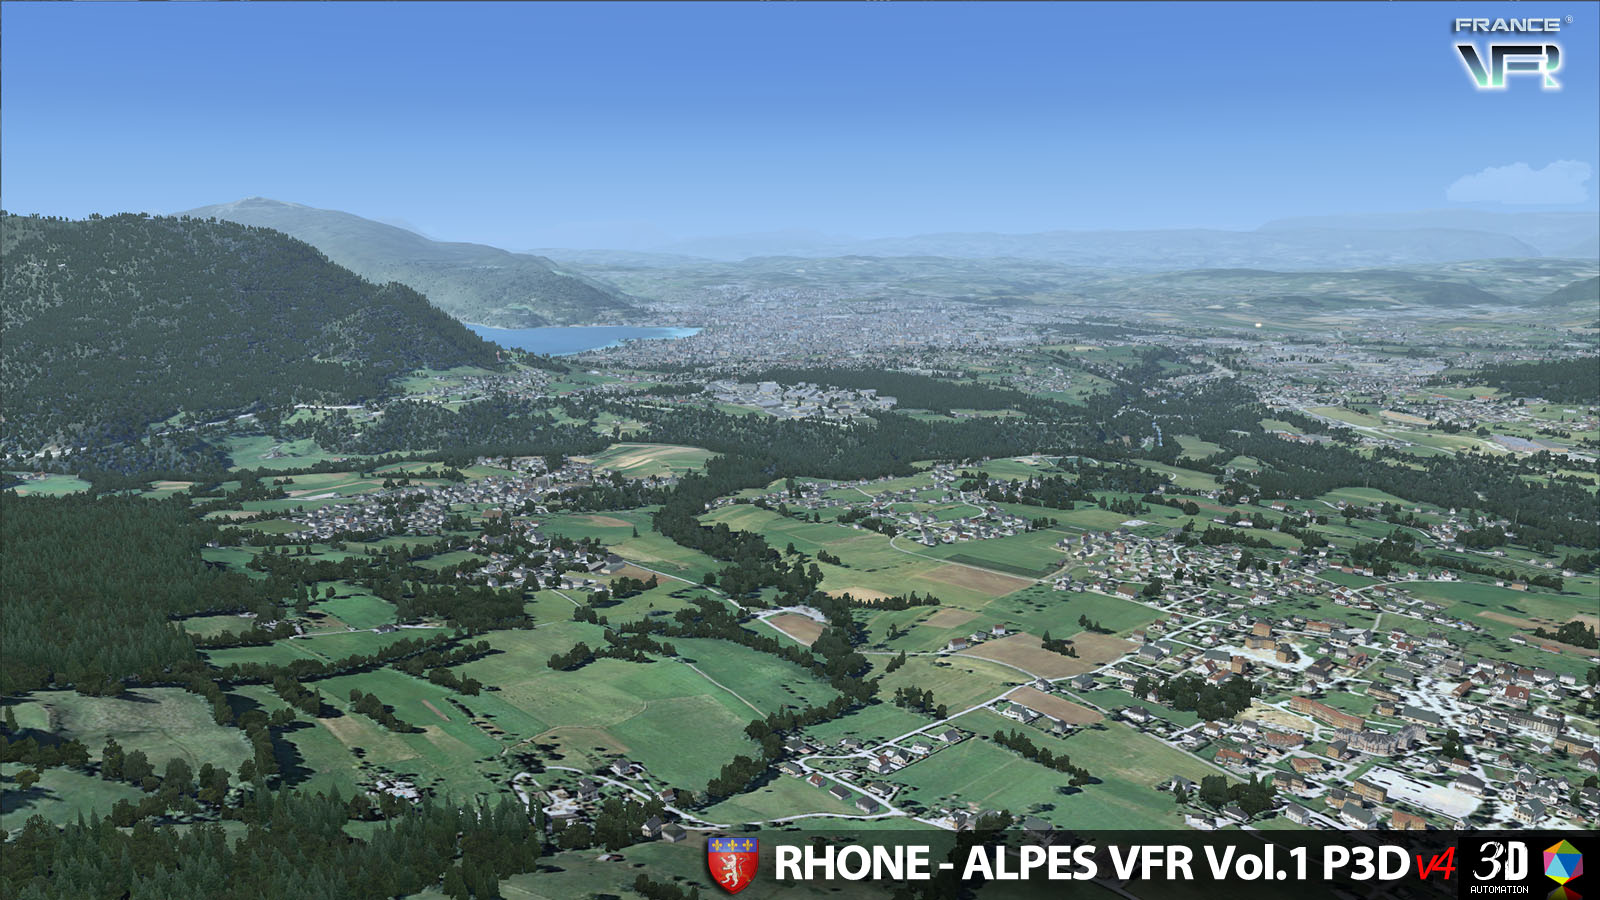 FRANCE VFR - RHONE-ALPES VFR VOL.1 3D AUTOMATION P3DV4